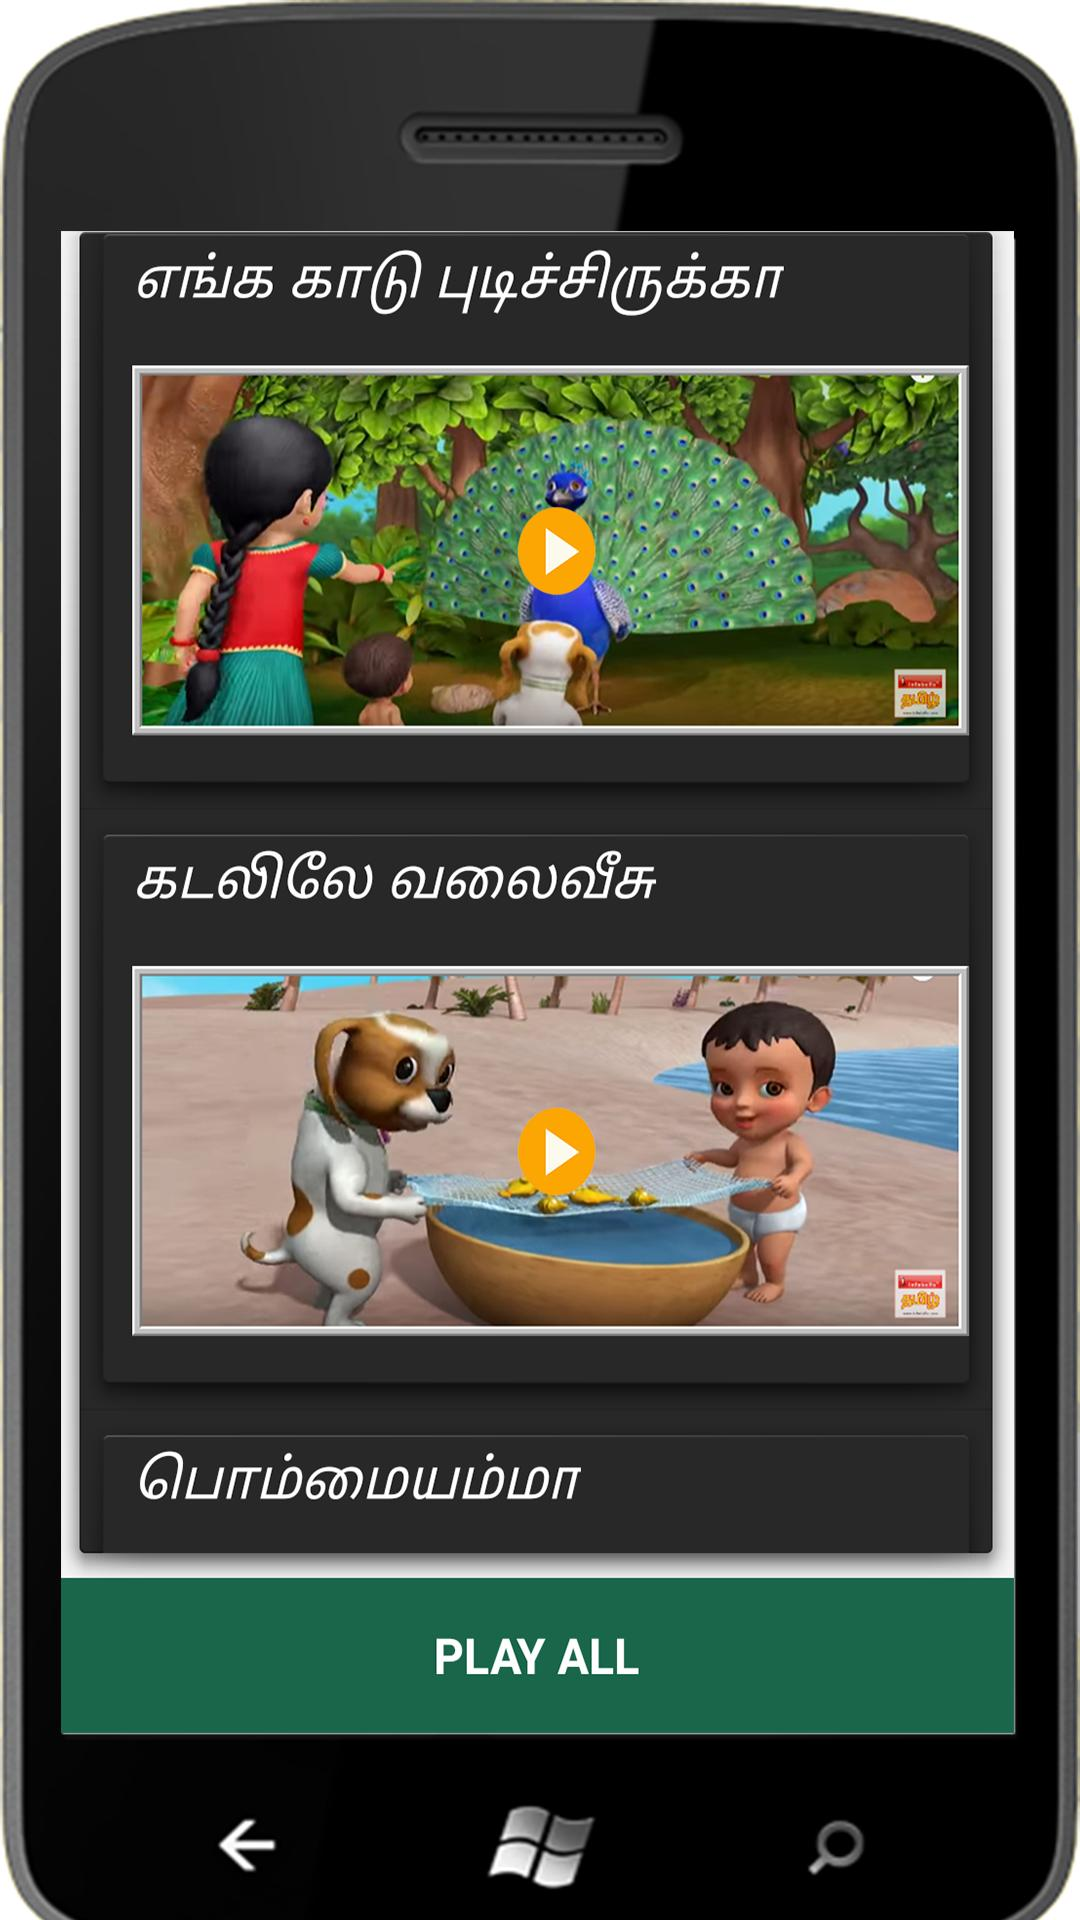 Little Baby Bum Video Download : little, video, download, Sleeping, Songs, Tamil, Download, Courselasopa